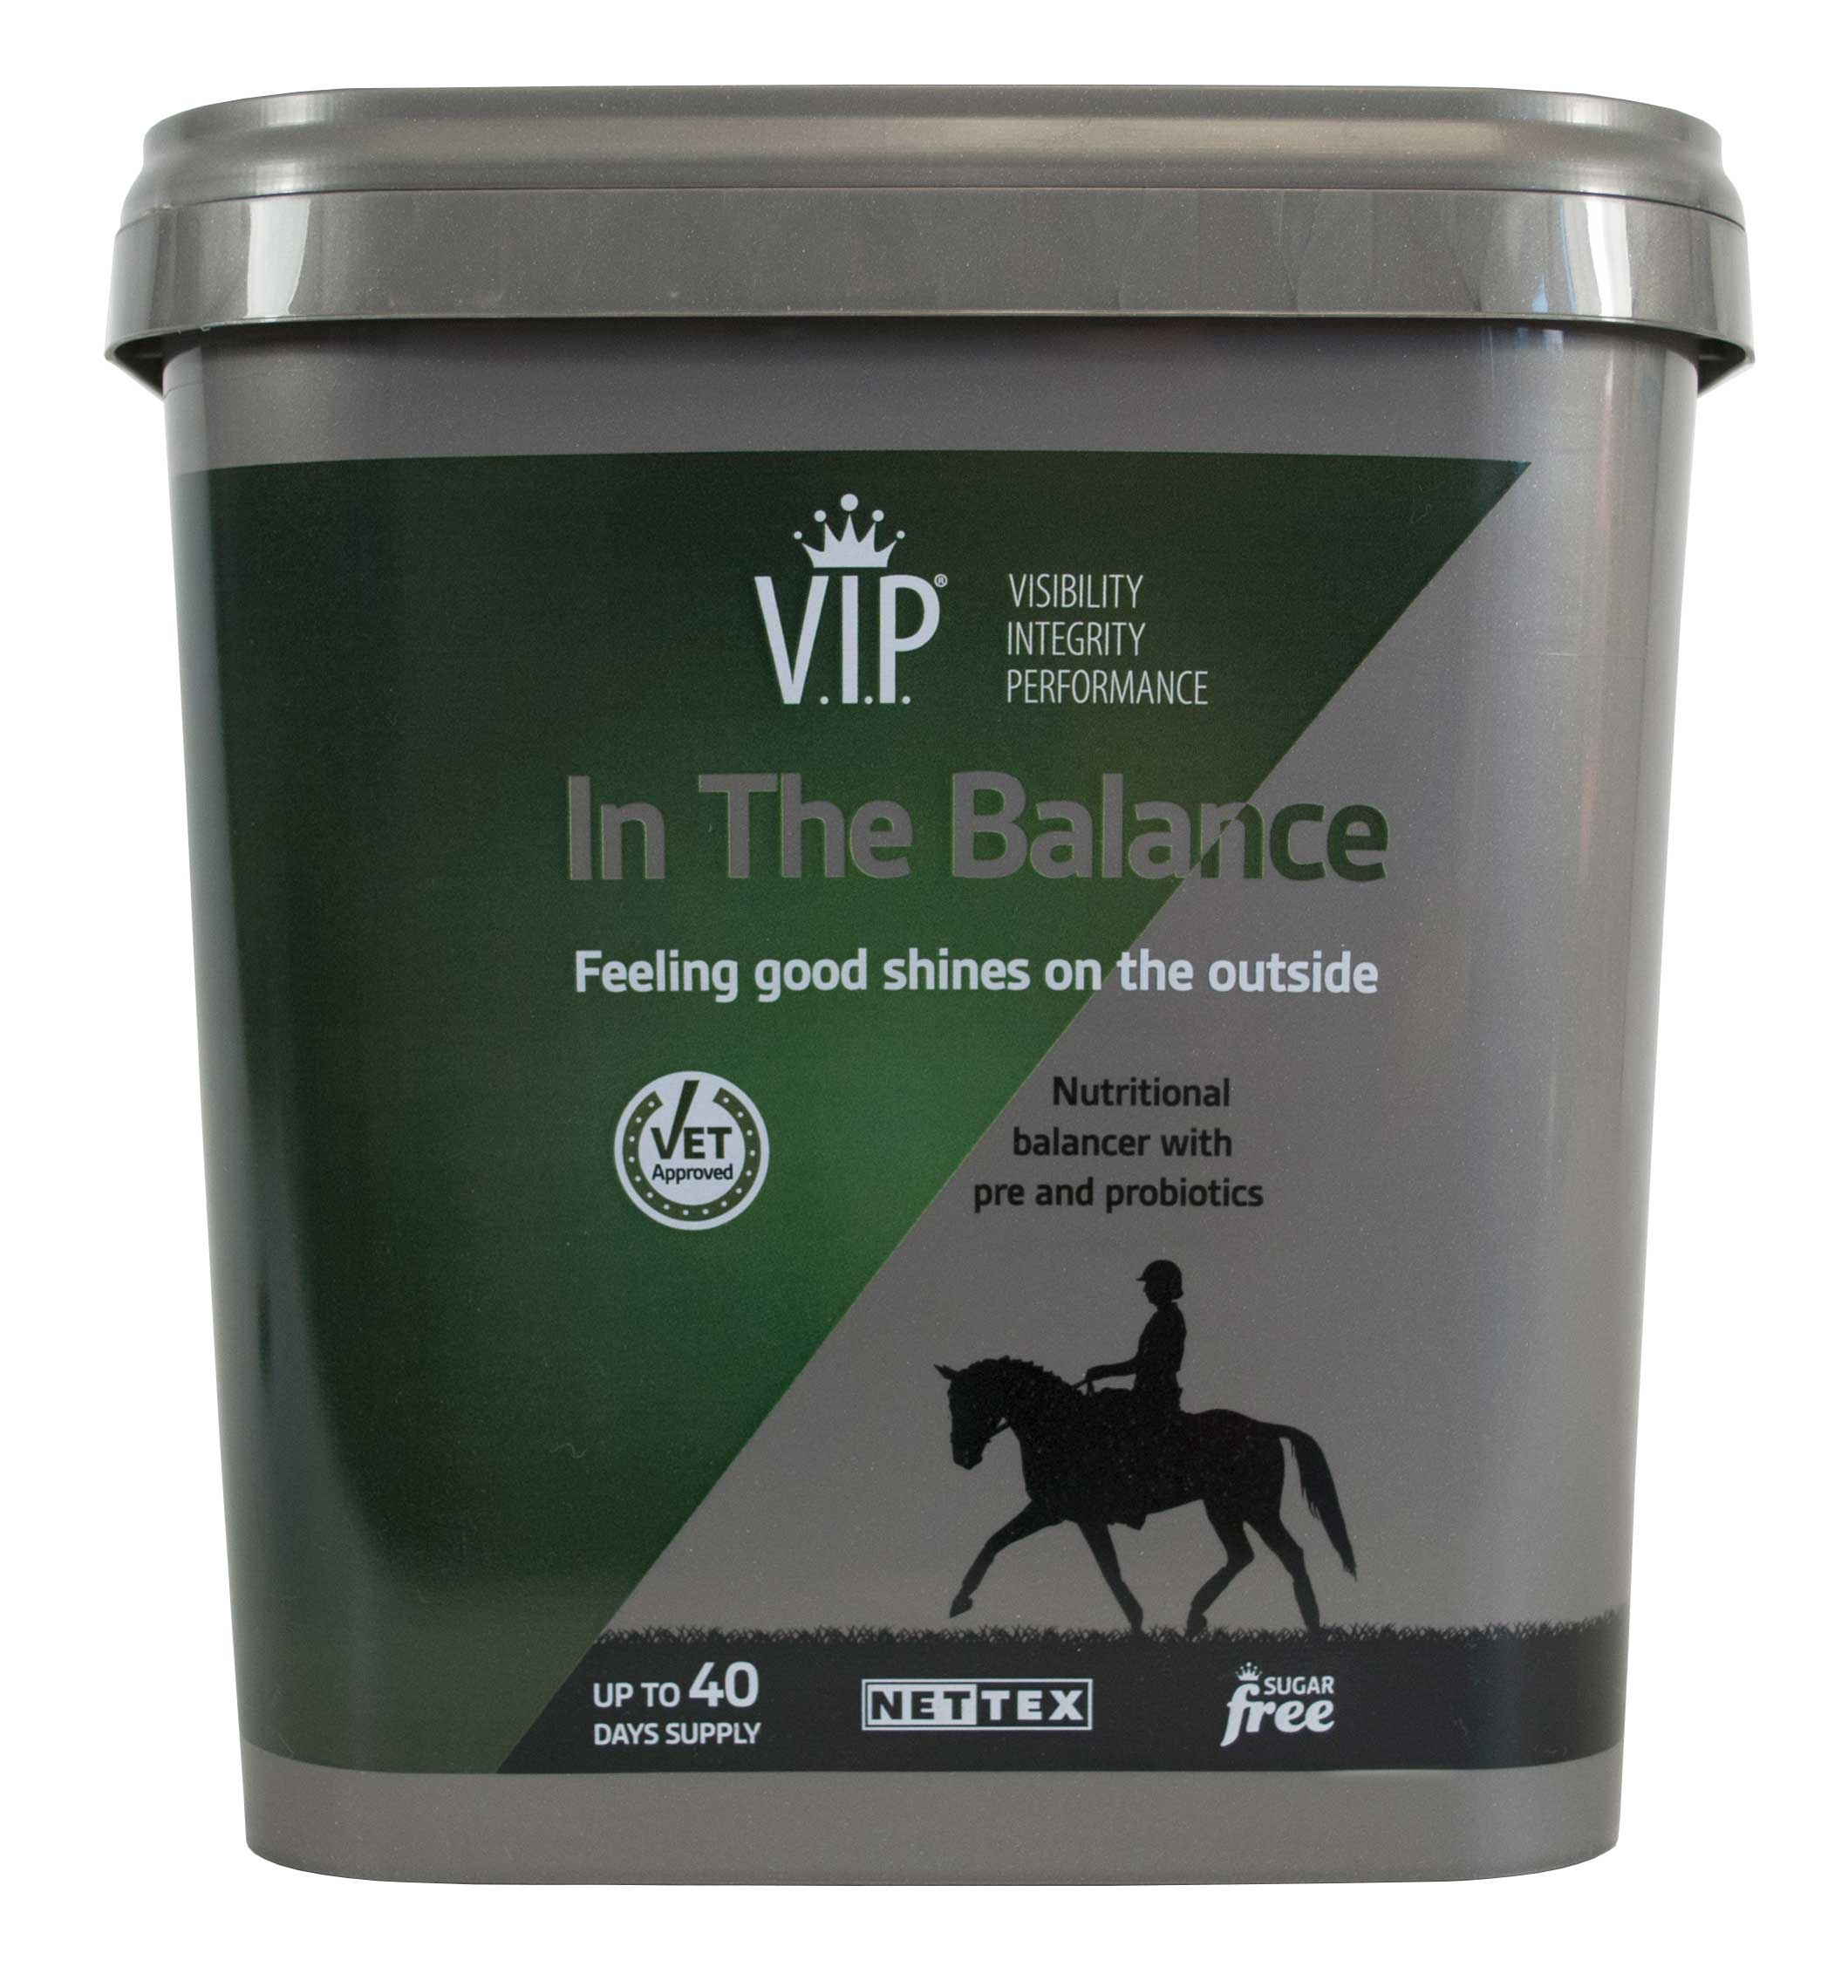 Nettex VIP In The Balance 2kg